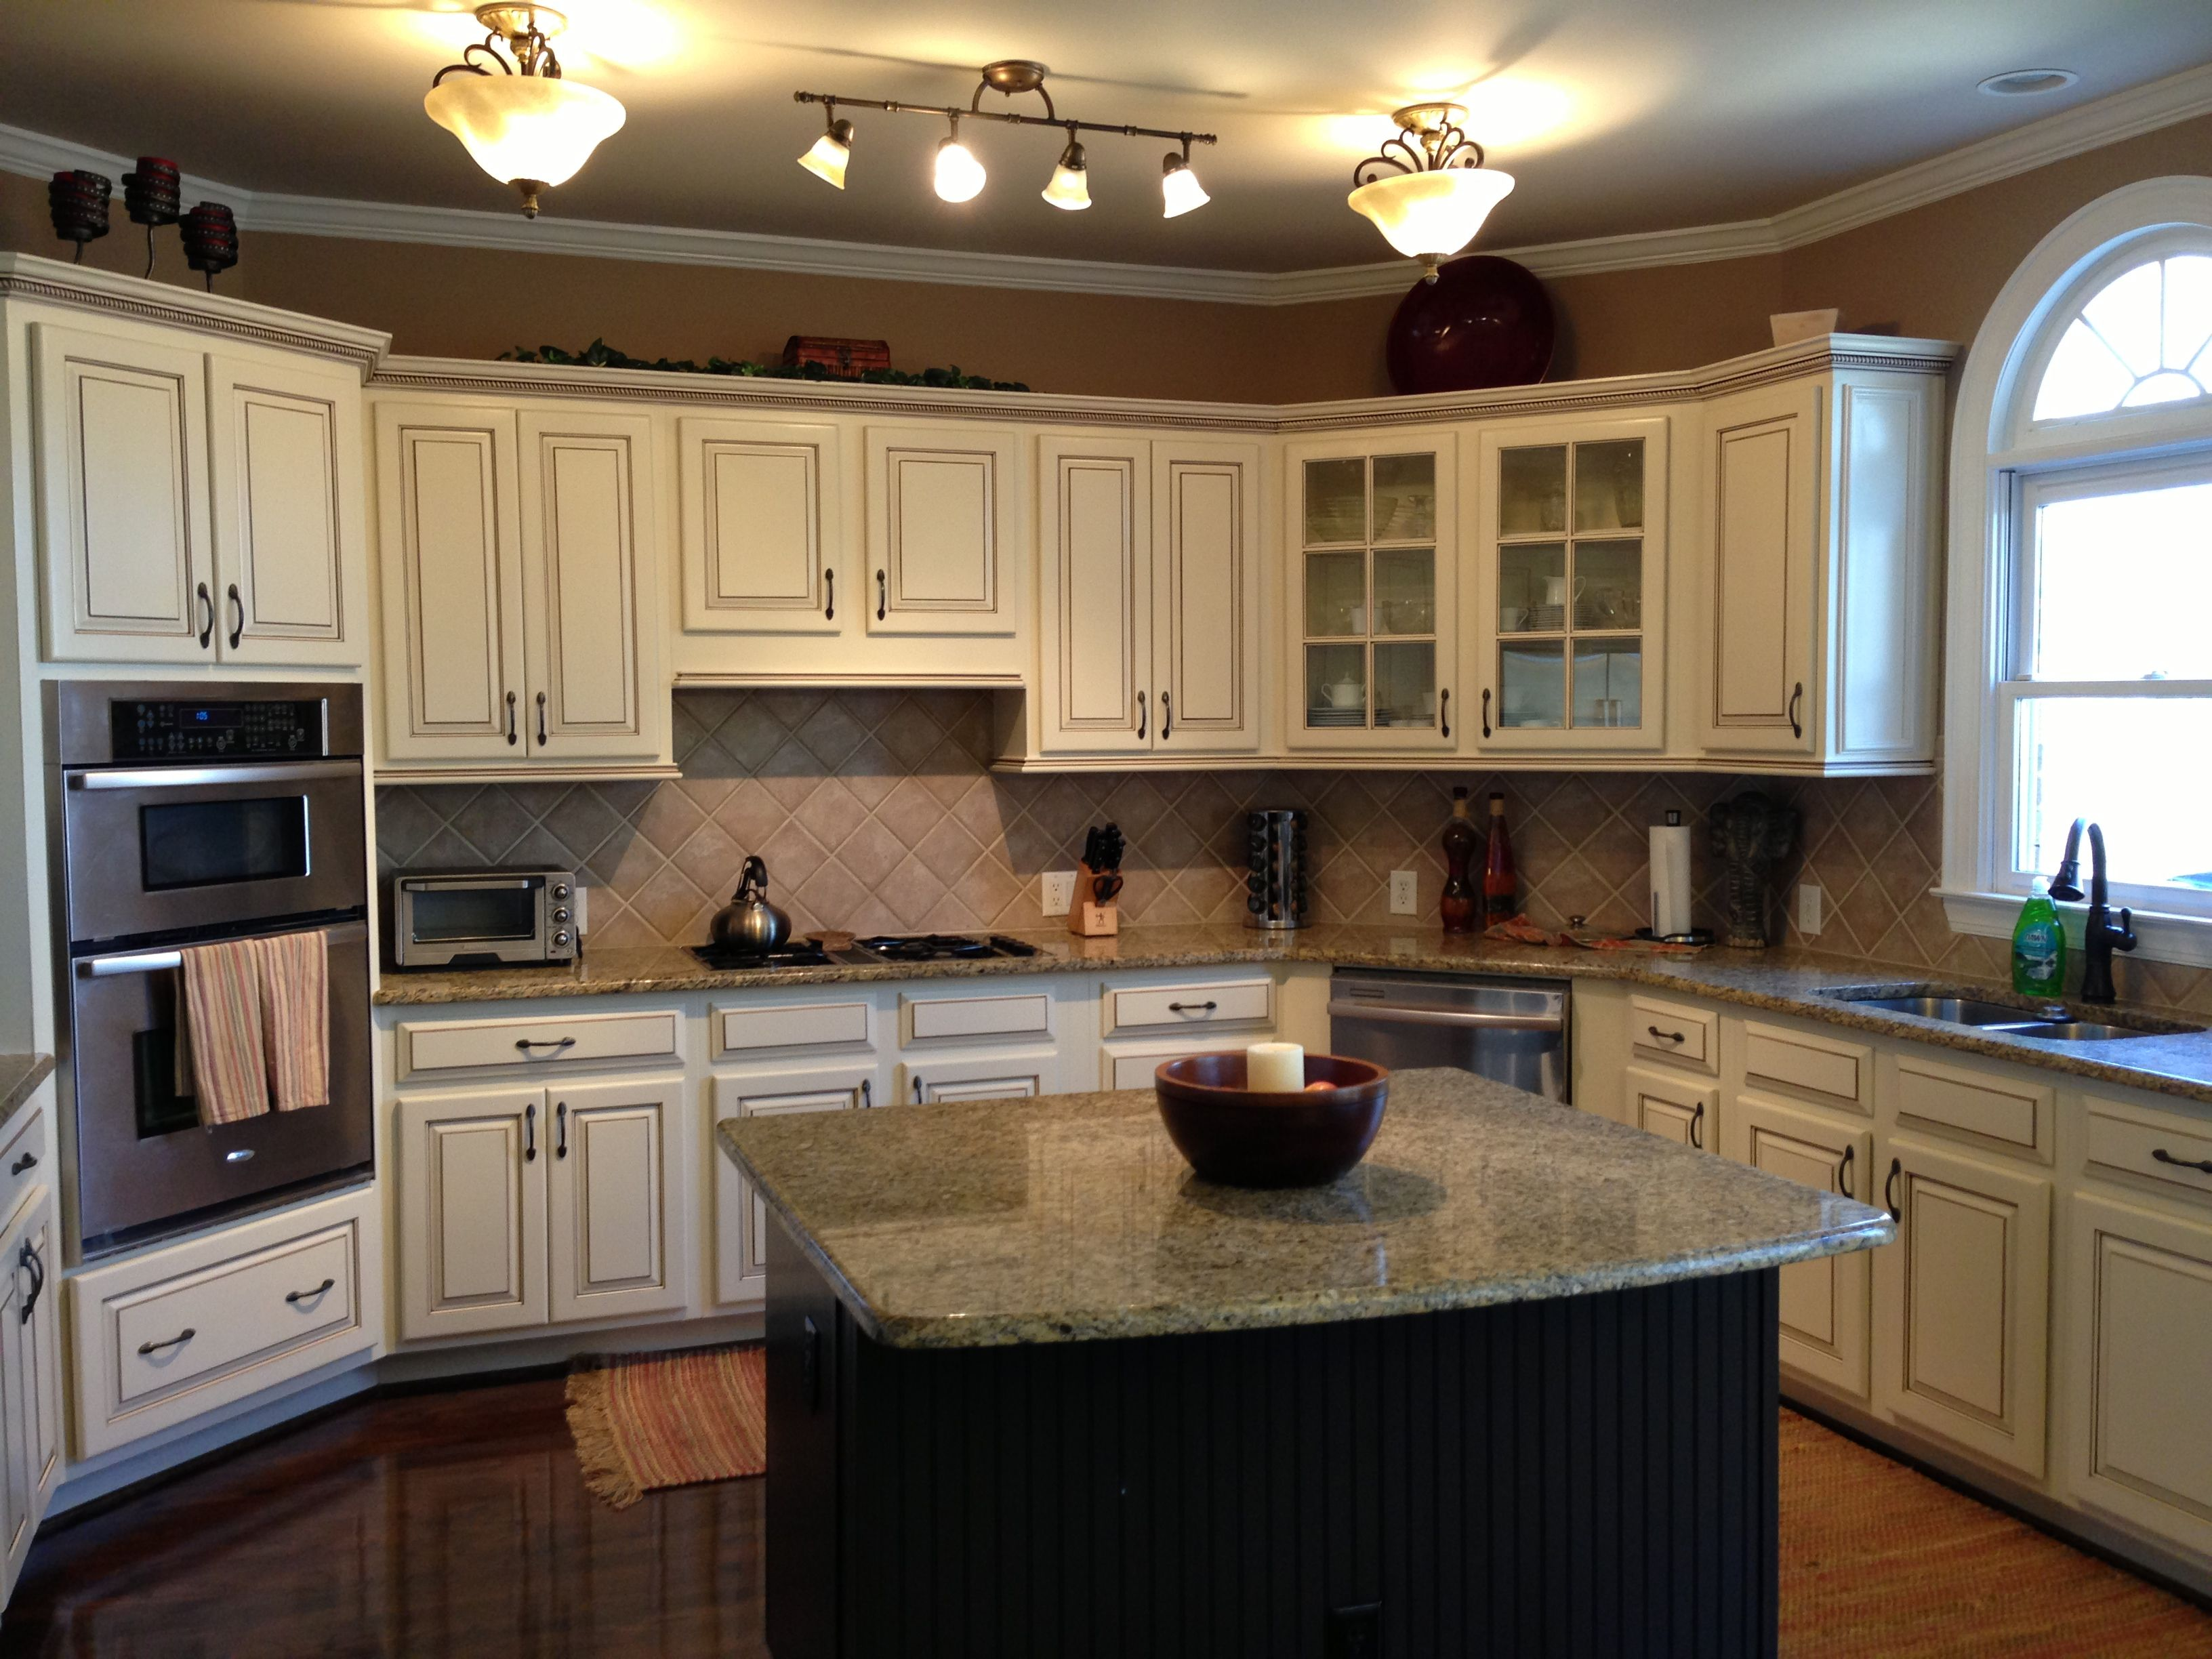 Best My Dream Kitchen At Last Painted Maple Cabinets Antique 400 x 300